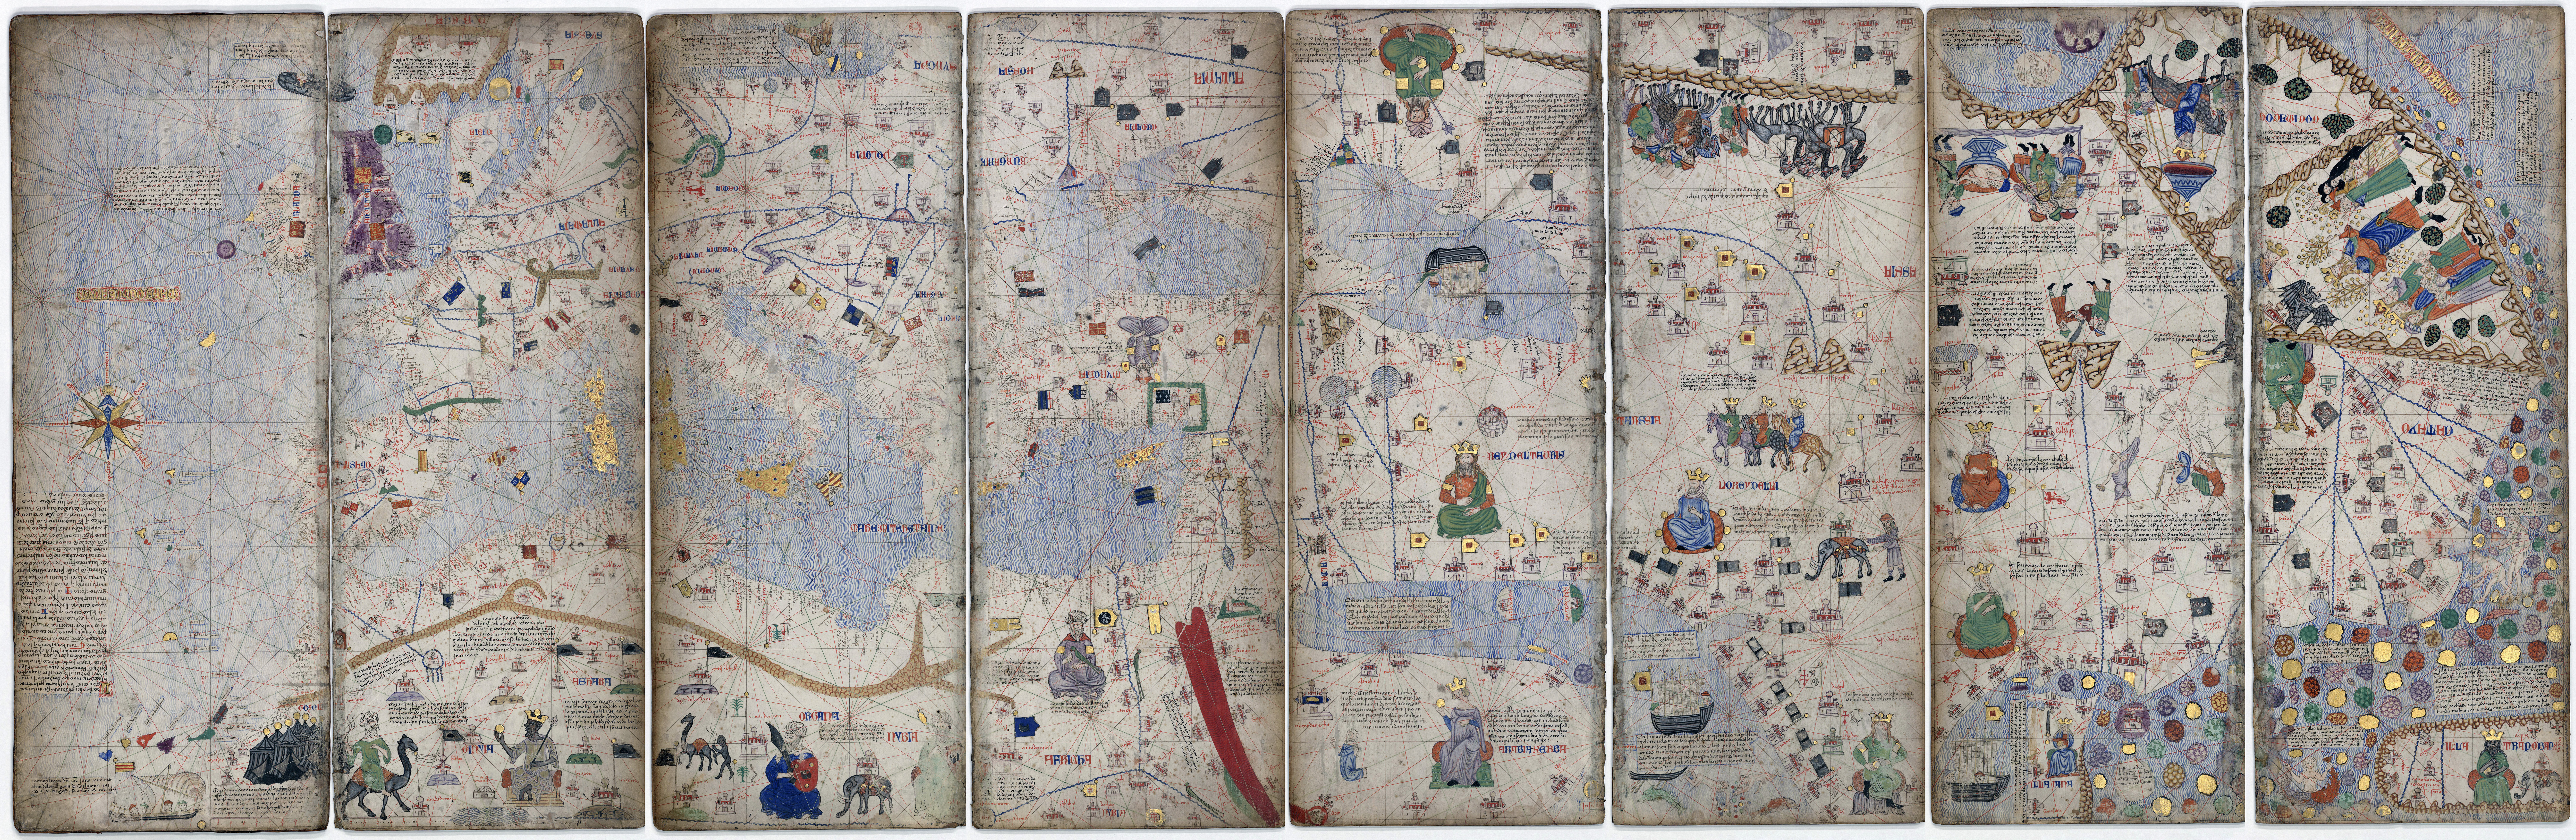 1375 Atlas Catalan Abraham Cresques